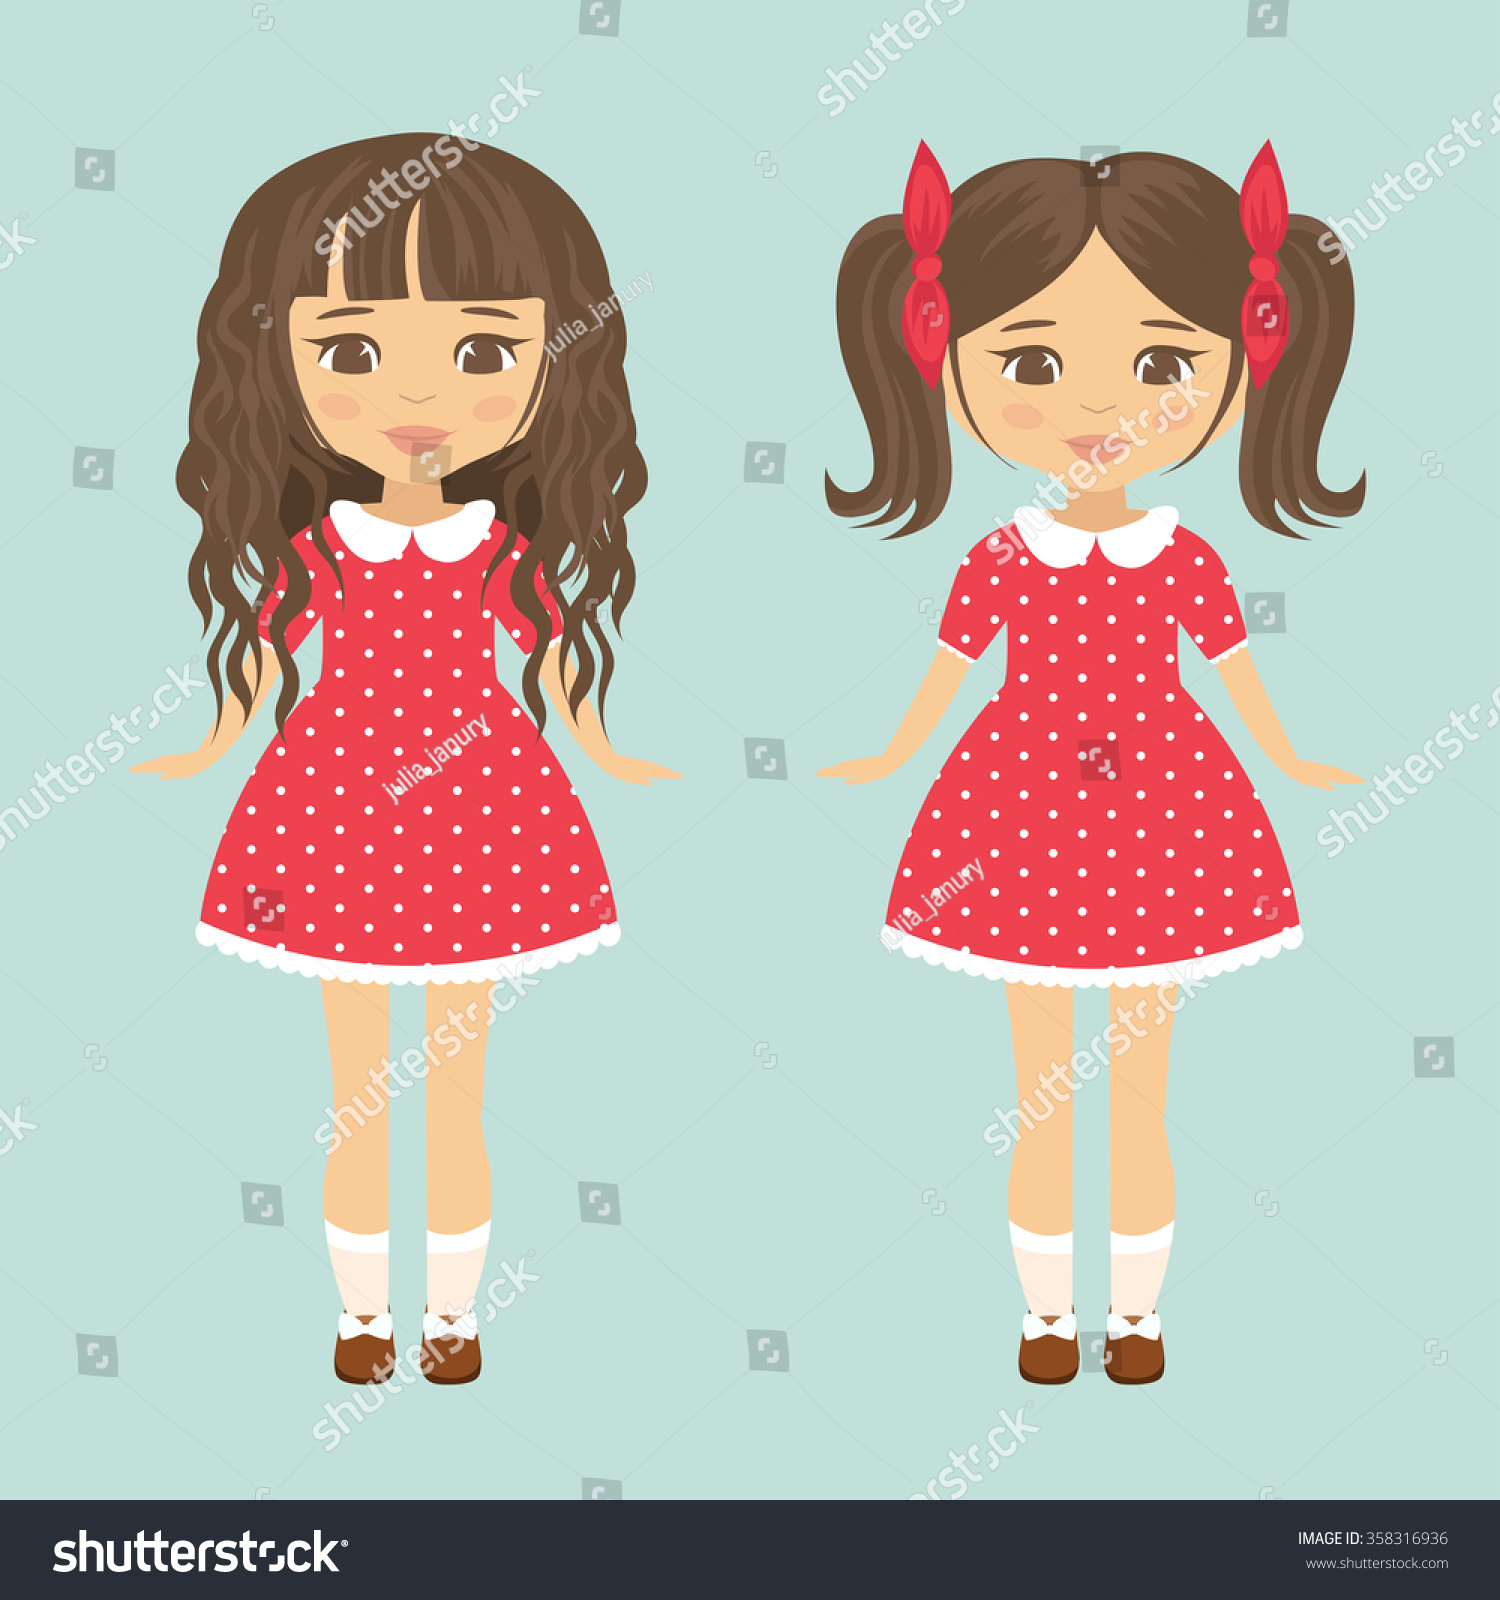 Little girl clipart graphics pigtail   Mujka Clipart, Printable, Characters  & Custom Graphic Design